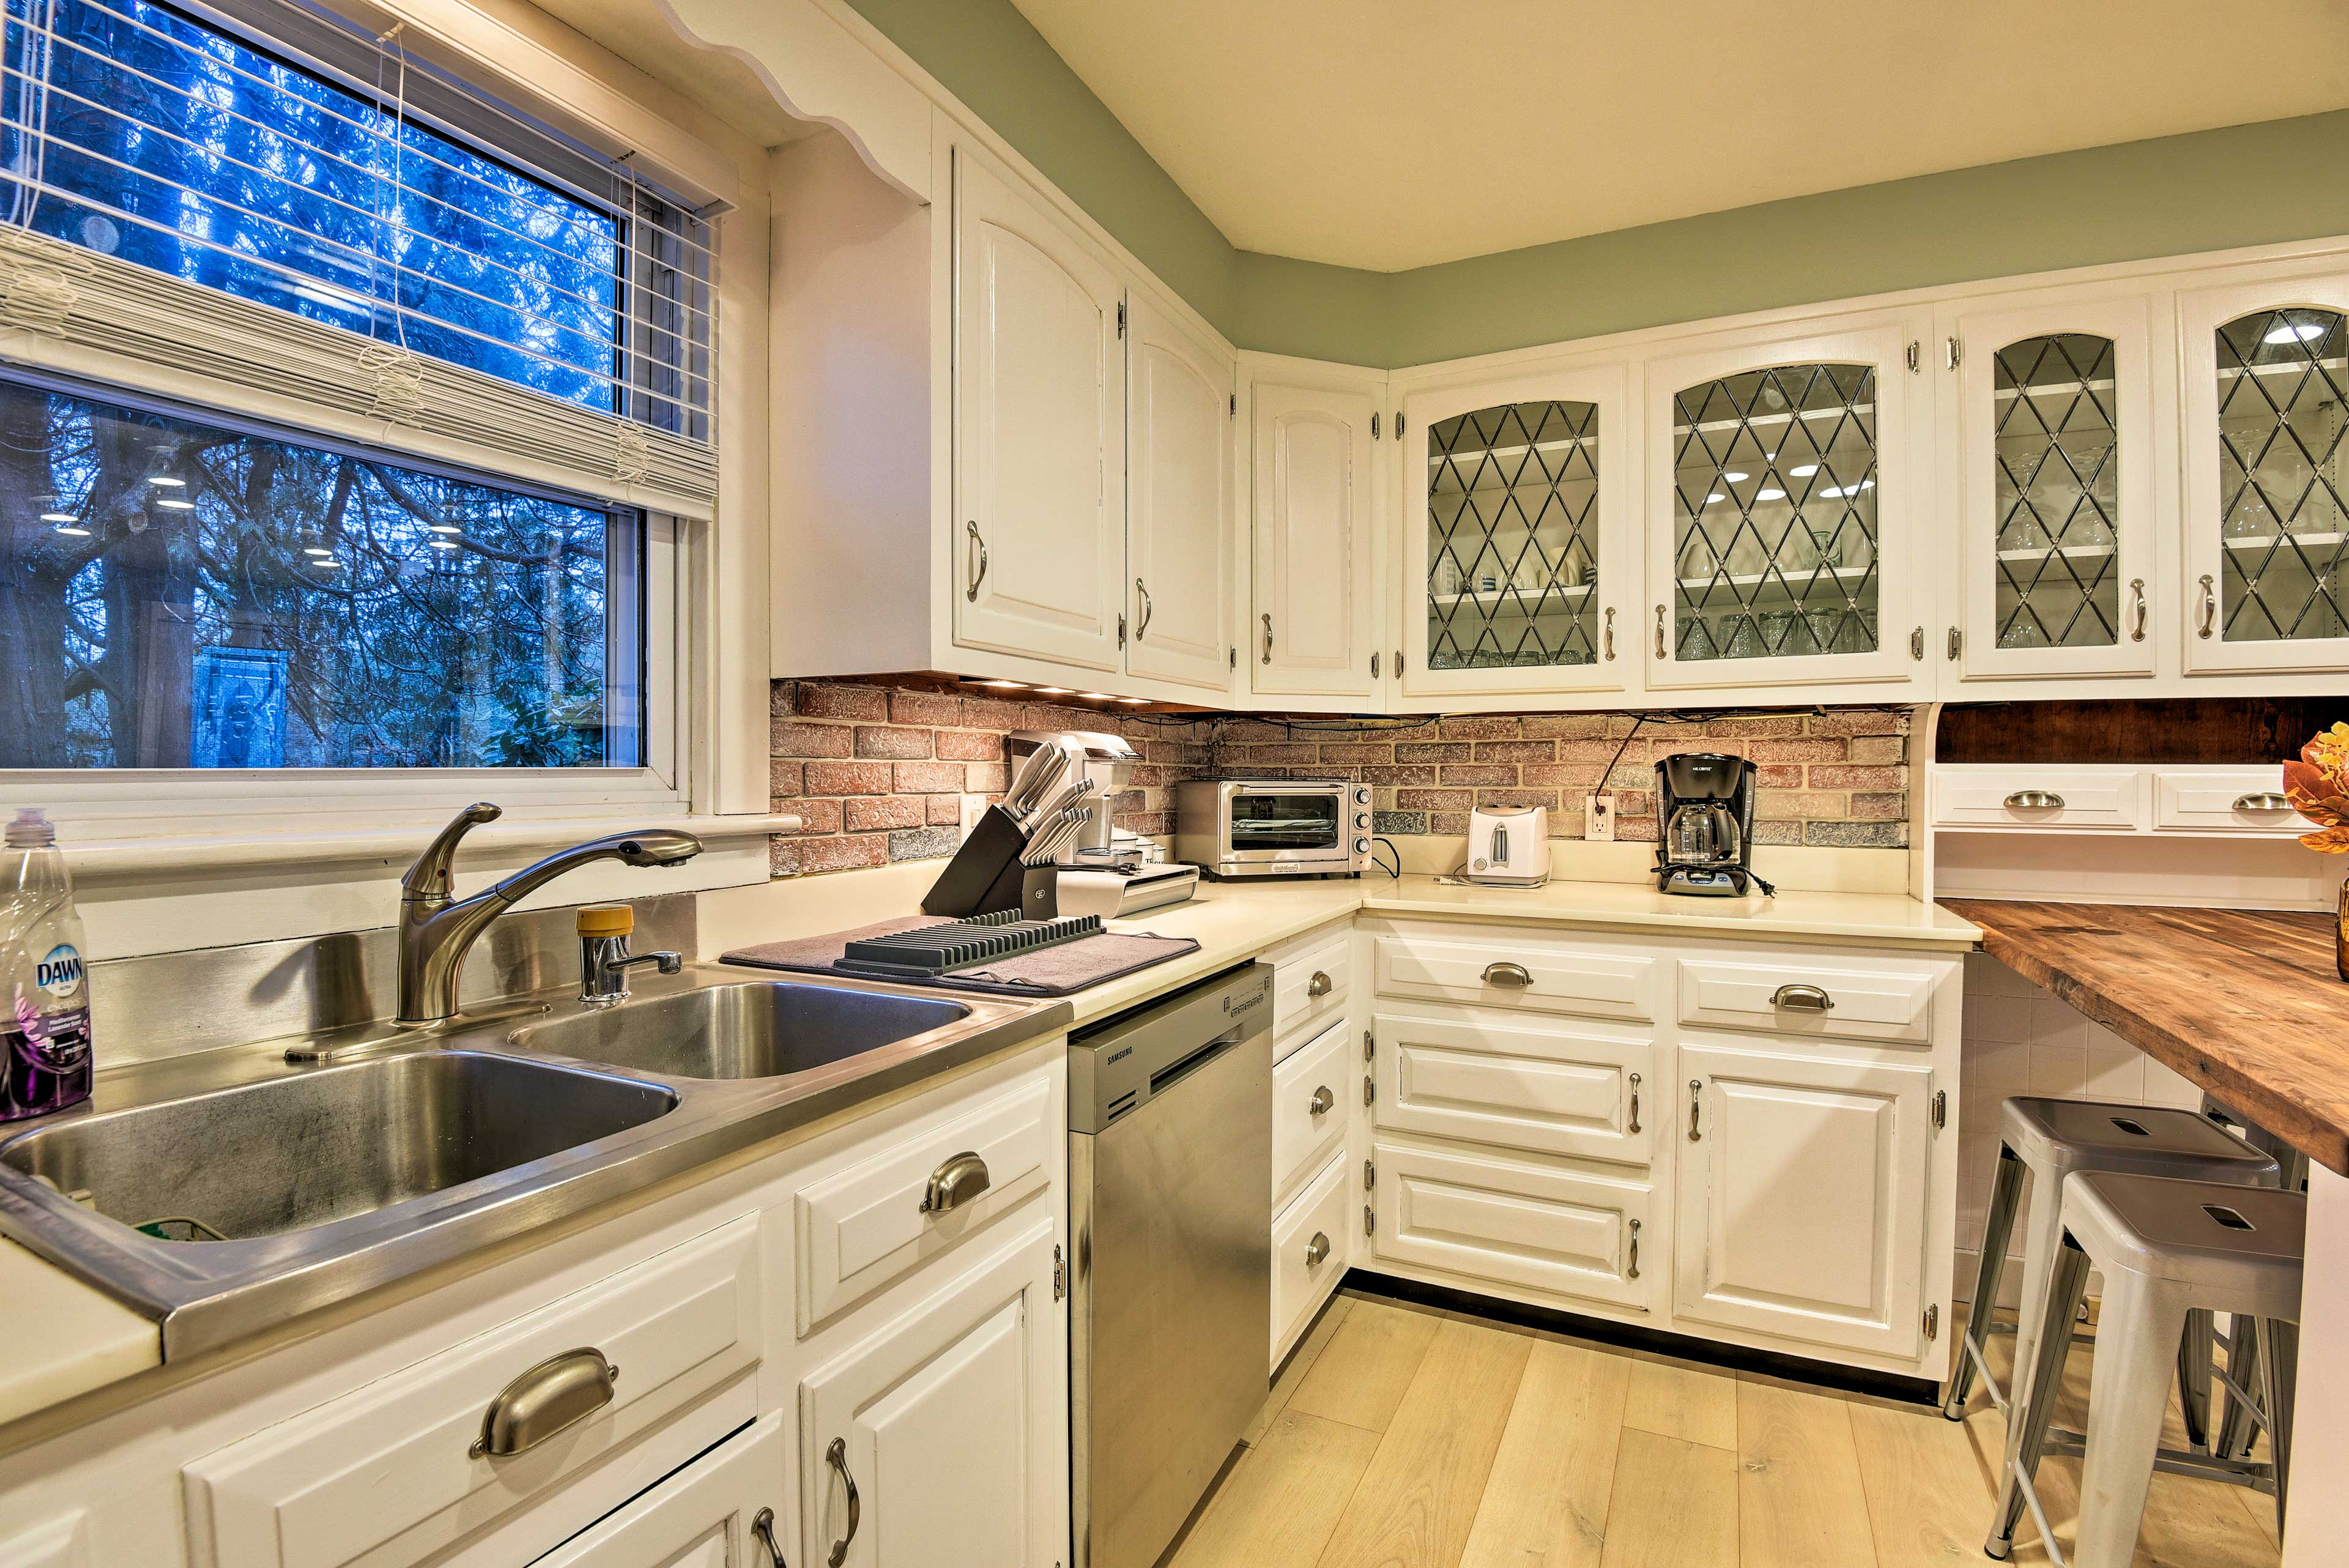 The sleek kitchen is adorned with stainless steel appliances.